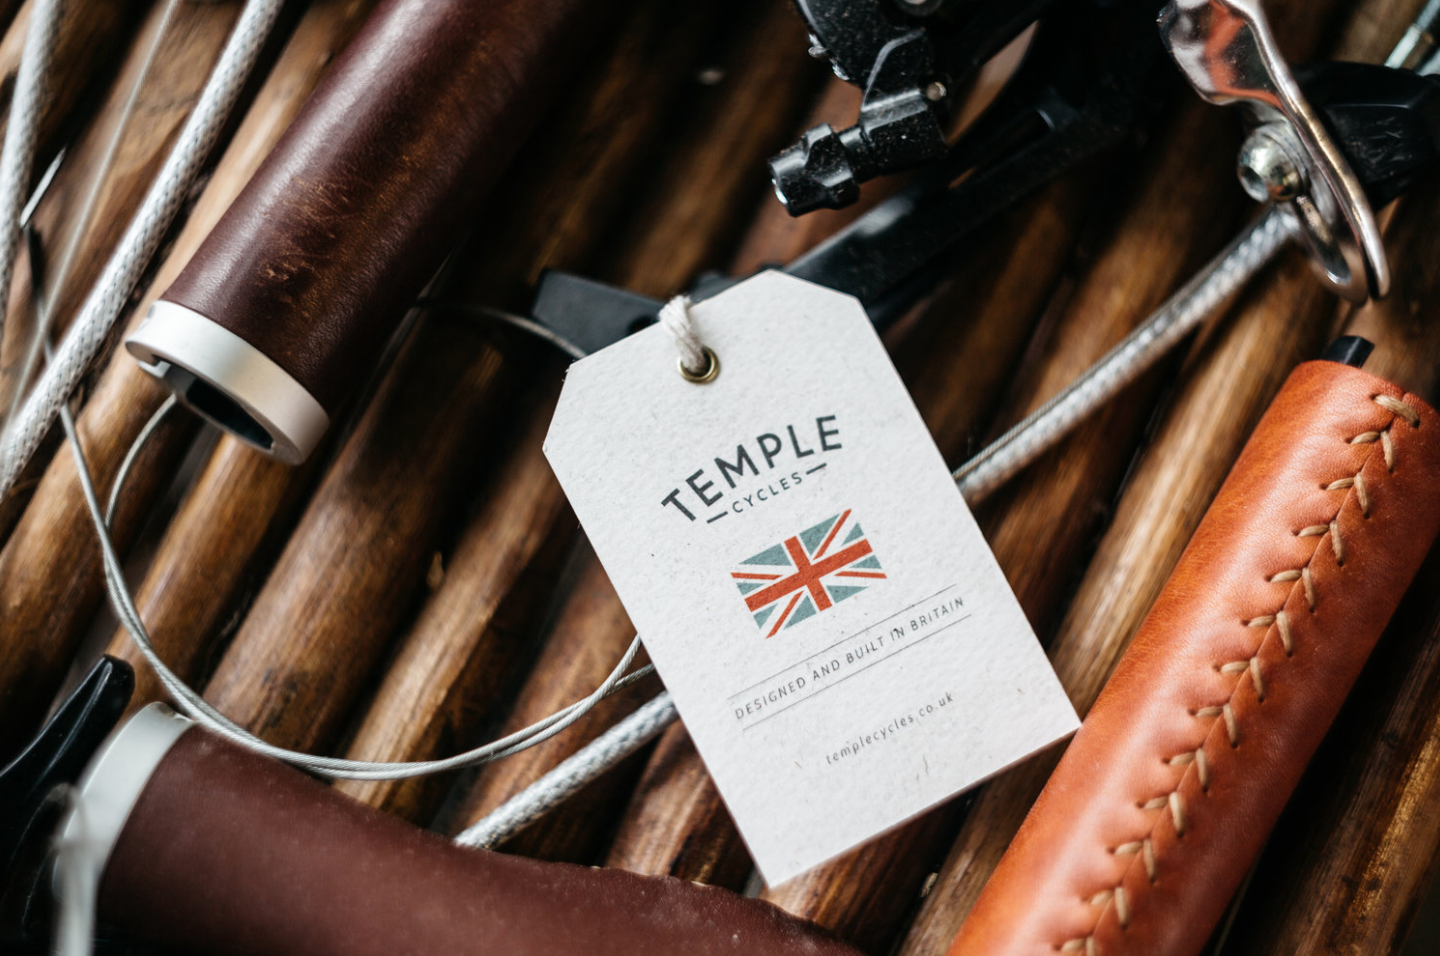 Temple Cycles - A brand video for Temple Cycles